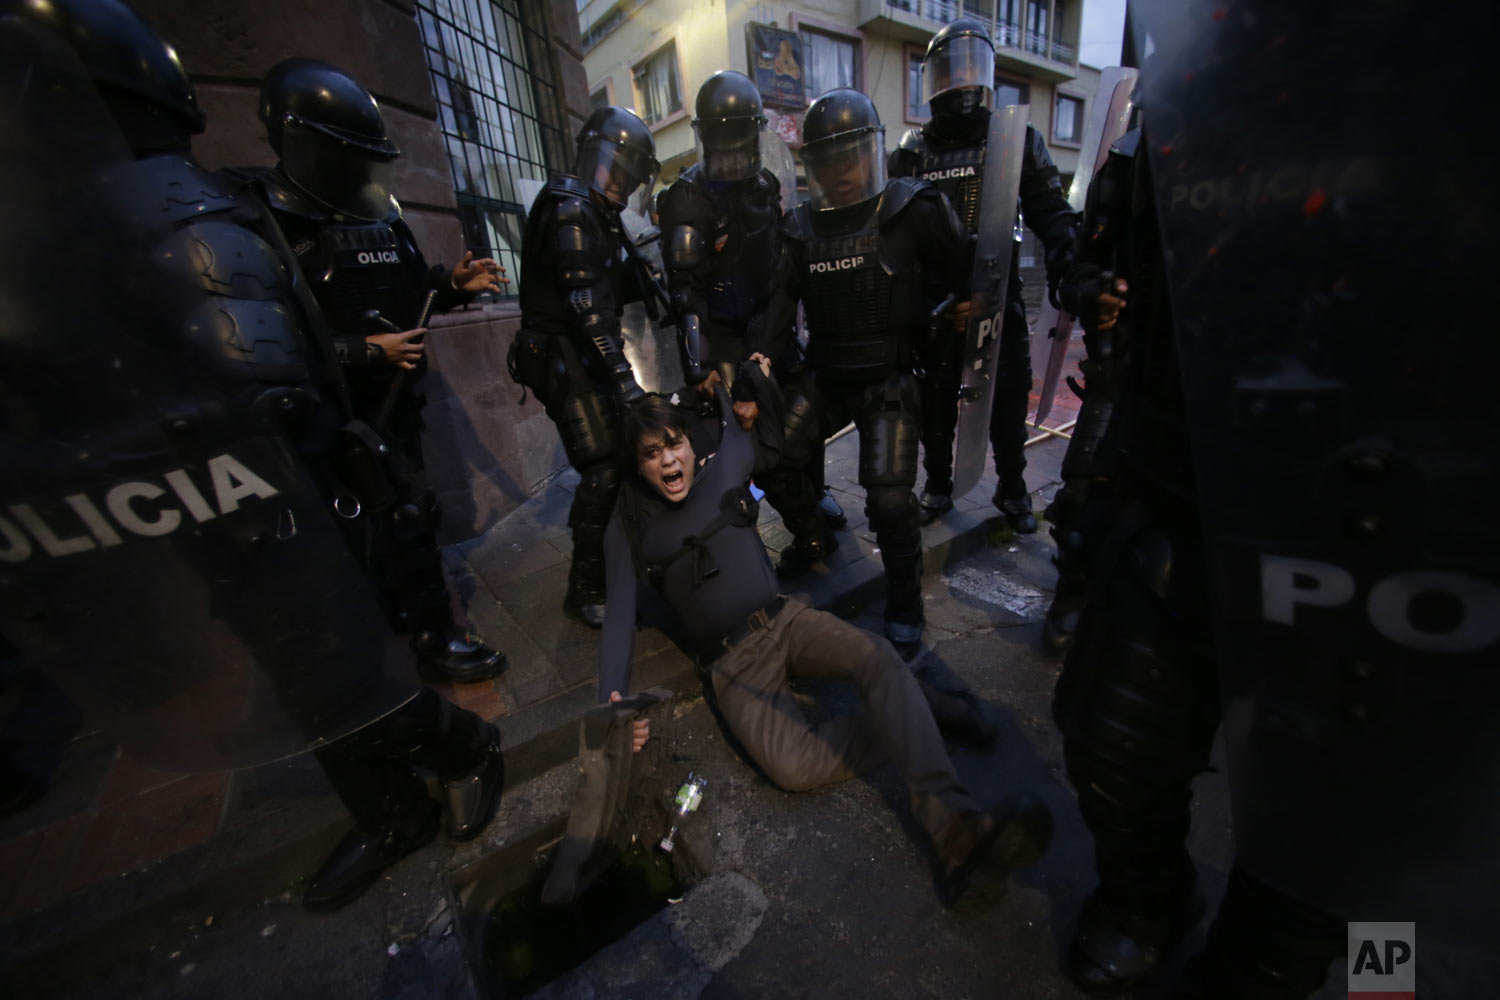 A man is detained by police blocking protesters from advancing closer to the presidential palace in Quito, Ecuador, Tuesday, April 16, 2019. Protesters were demonstrating against the policies of President Lenin Moreno's government, including the recent firing of state workers, the taking of an International Monetary Fund loan and the removal of Julian Assange's asylum status. (AP Photo/Dolores Ochoa)